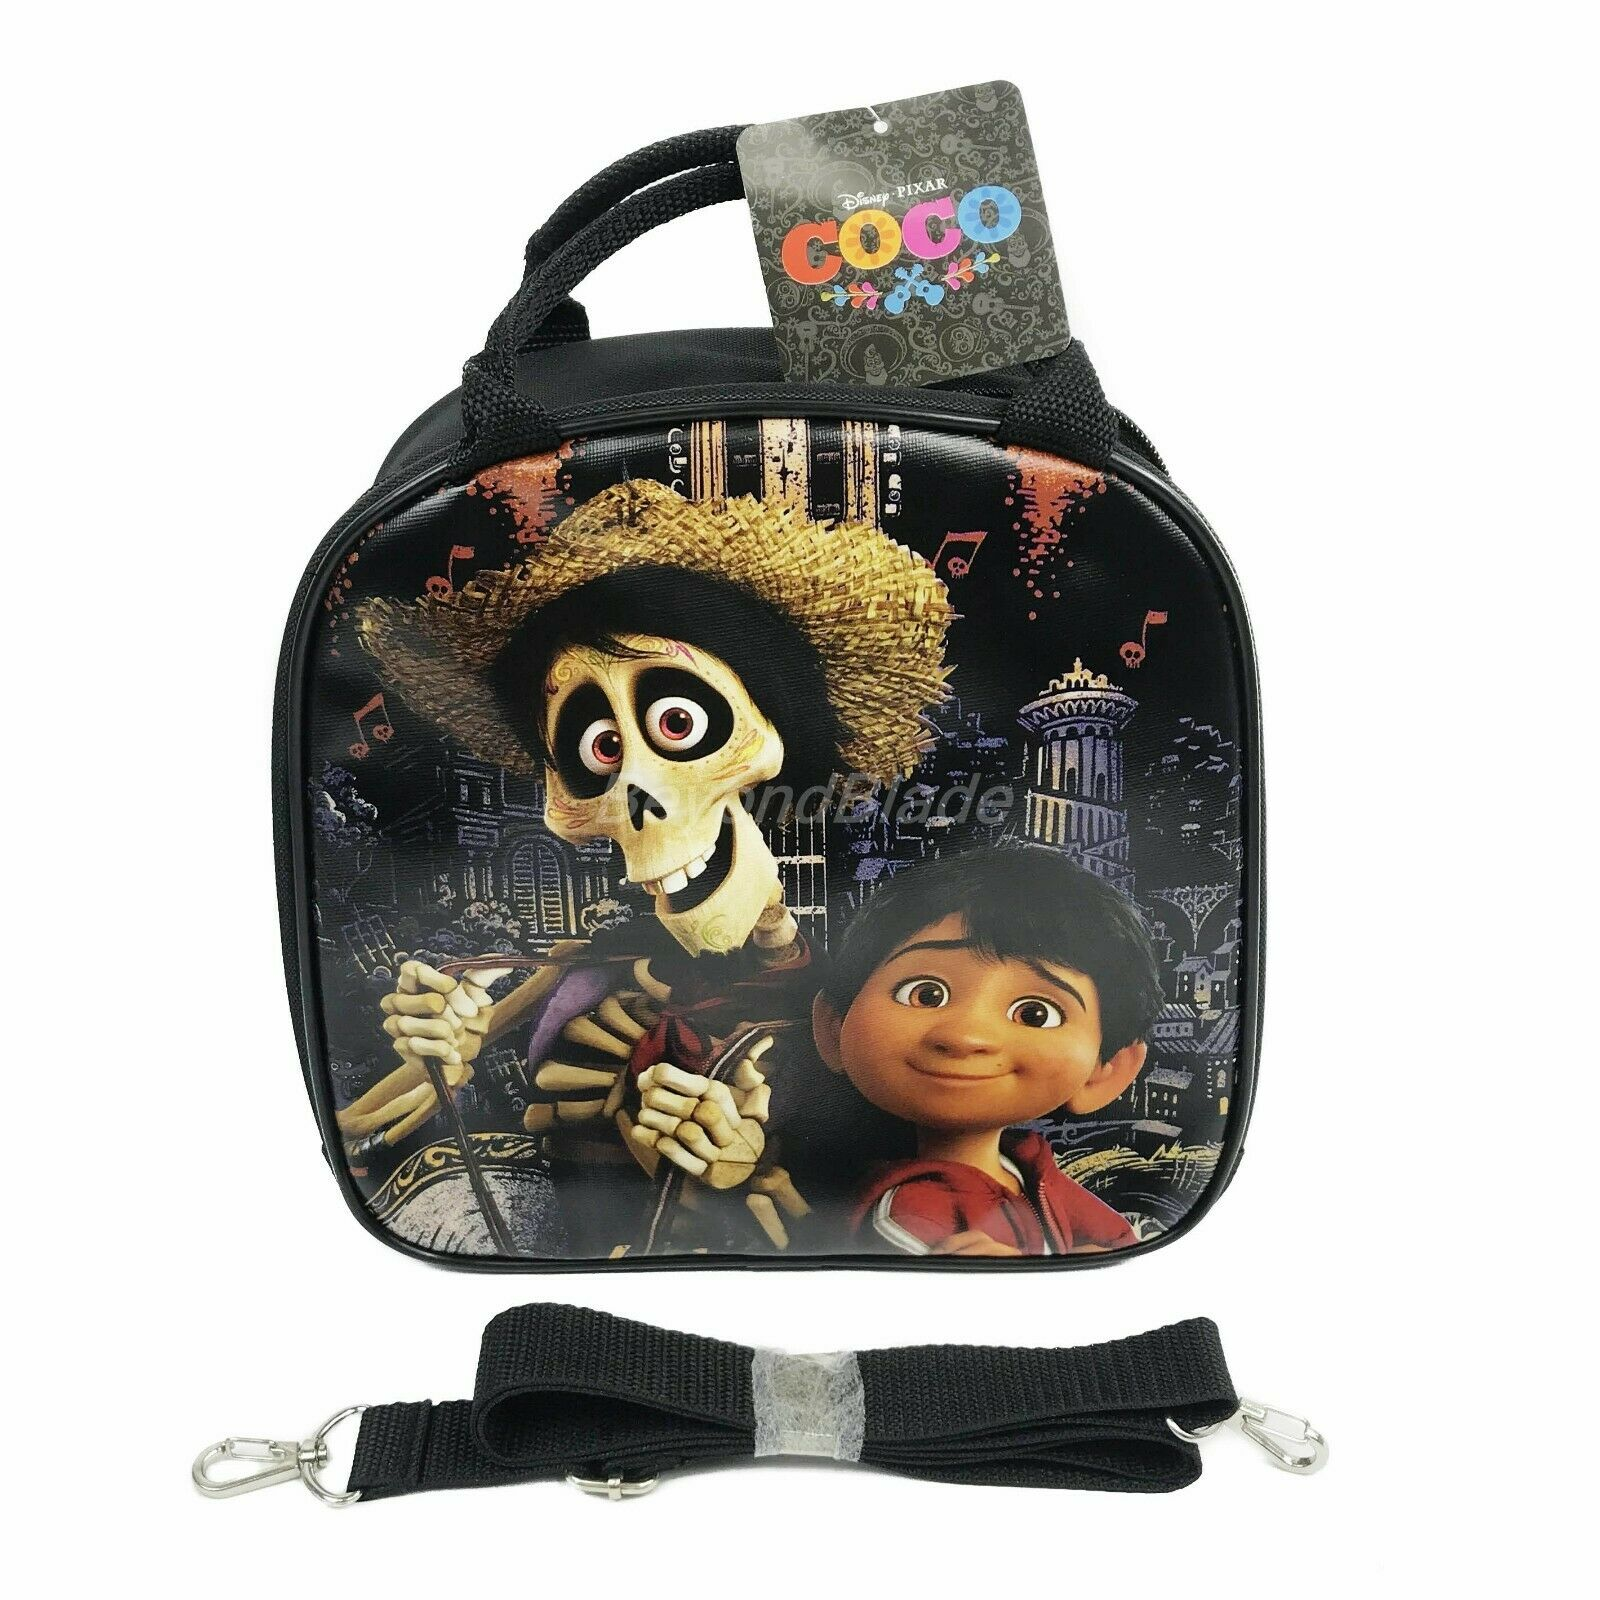 Disney Coco Black Lunch Box Lunch Bag and Adjustable Strap I